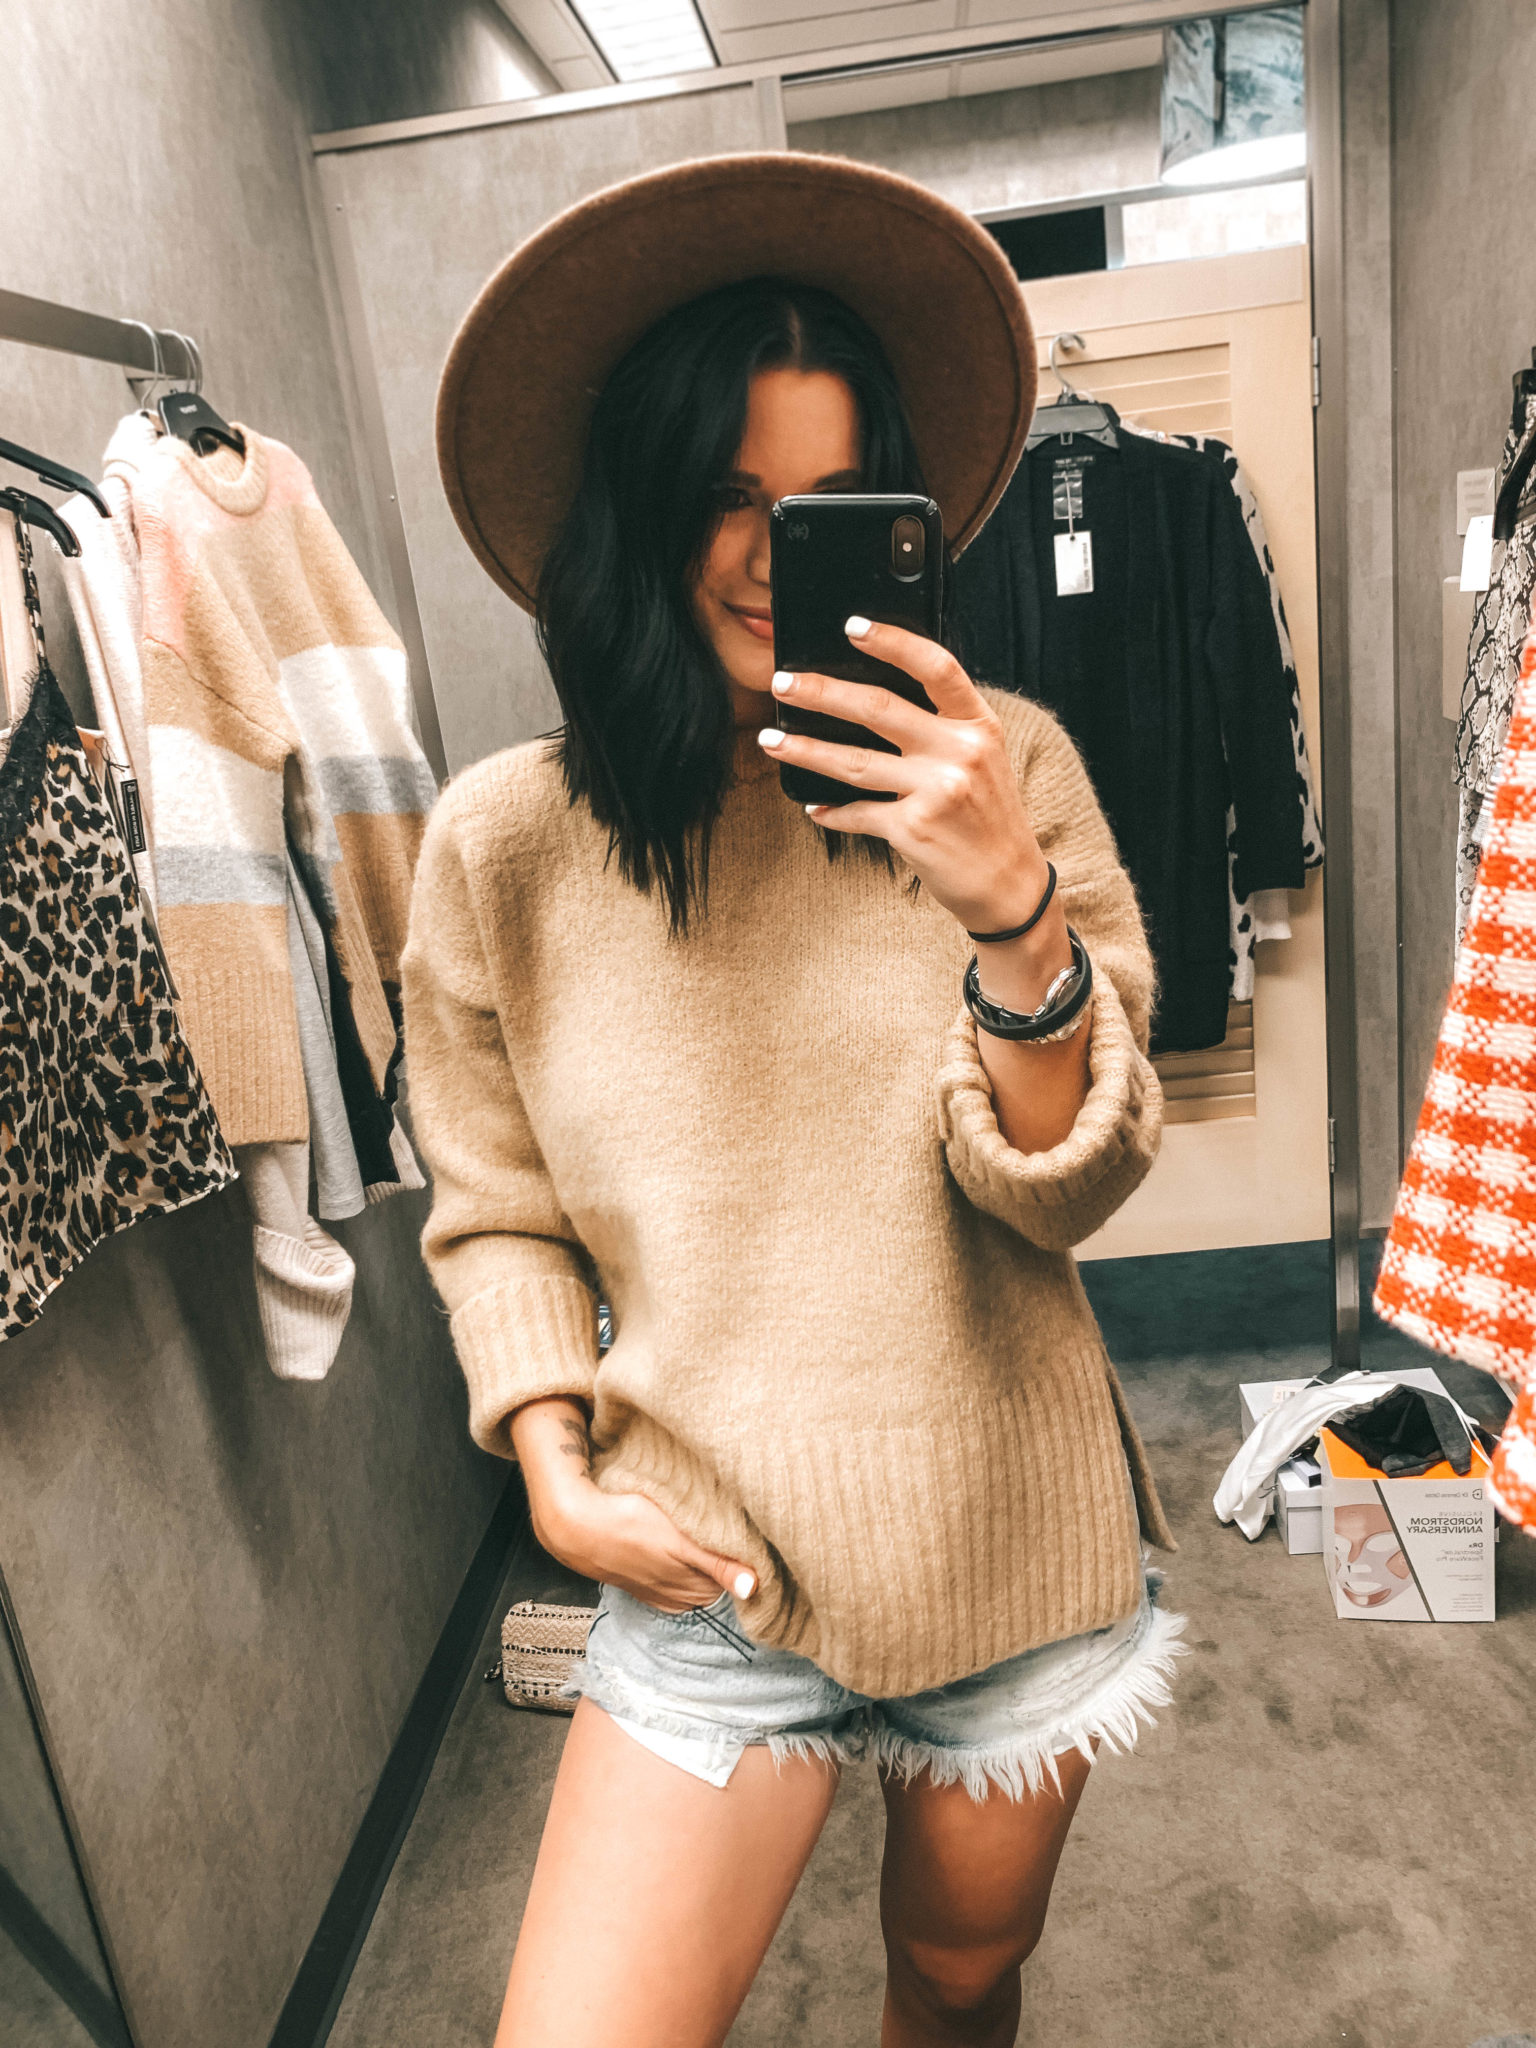 Top 11 Must Have Pieces from the Nordstrom Anniversary Sale by popular Austin fashion blog, Dressed to Kill: image of a woman standing inside a Nordstrom dressing room, taking a selfie in the mirror and wearing a tan Funnel Neck Cashmere Sweater and Trim Wool Panama Hat, Main, color, 235 Snakeskin Trim Wool Panama Hat by TREASURE & BOND